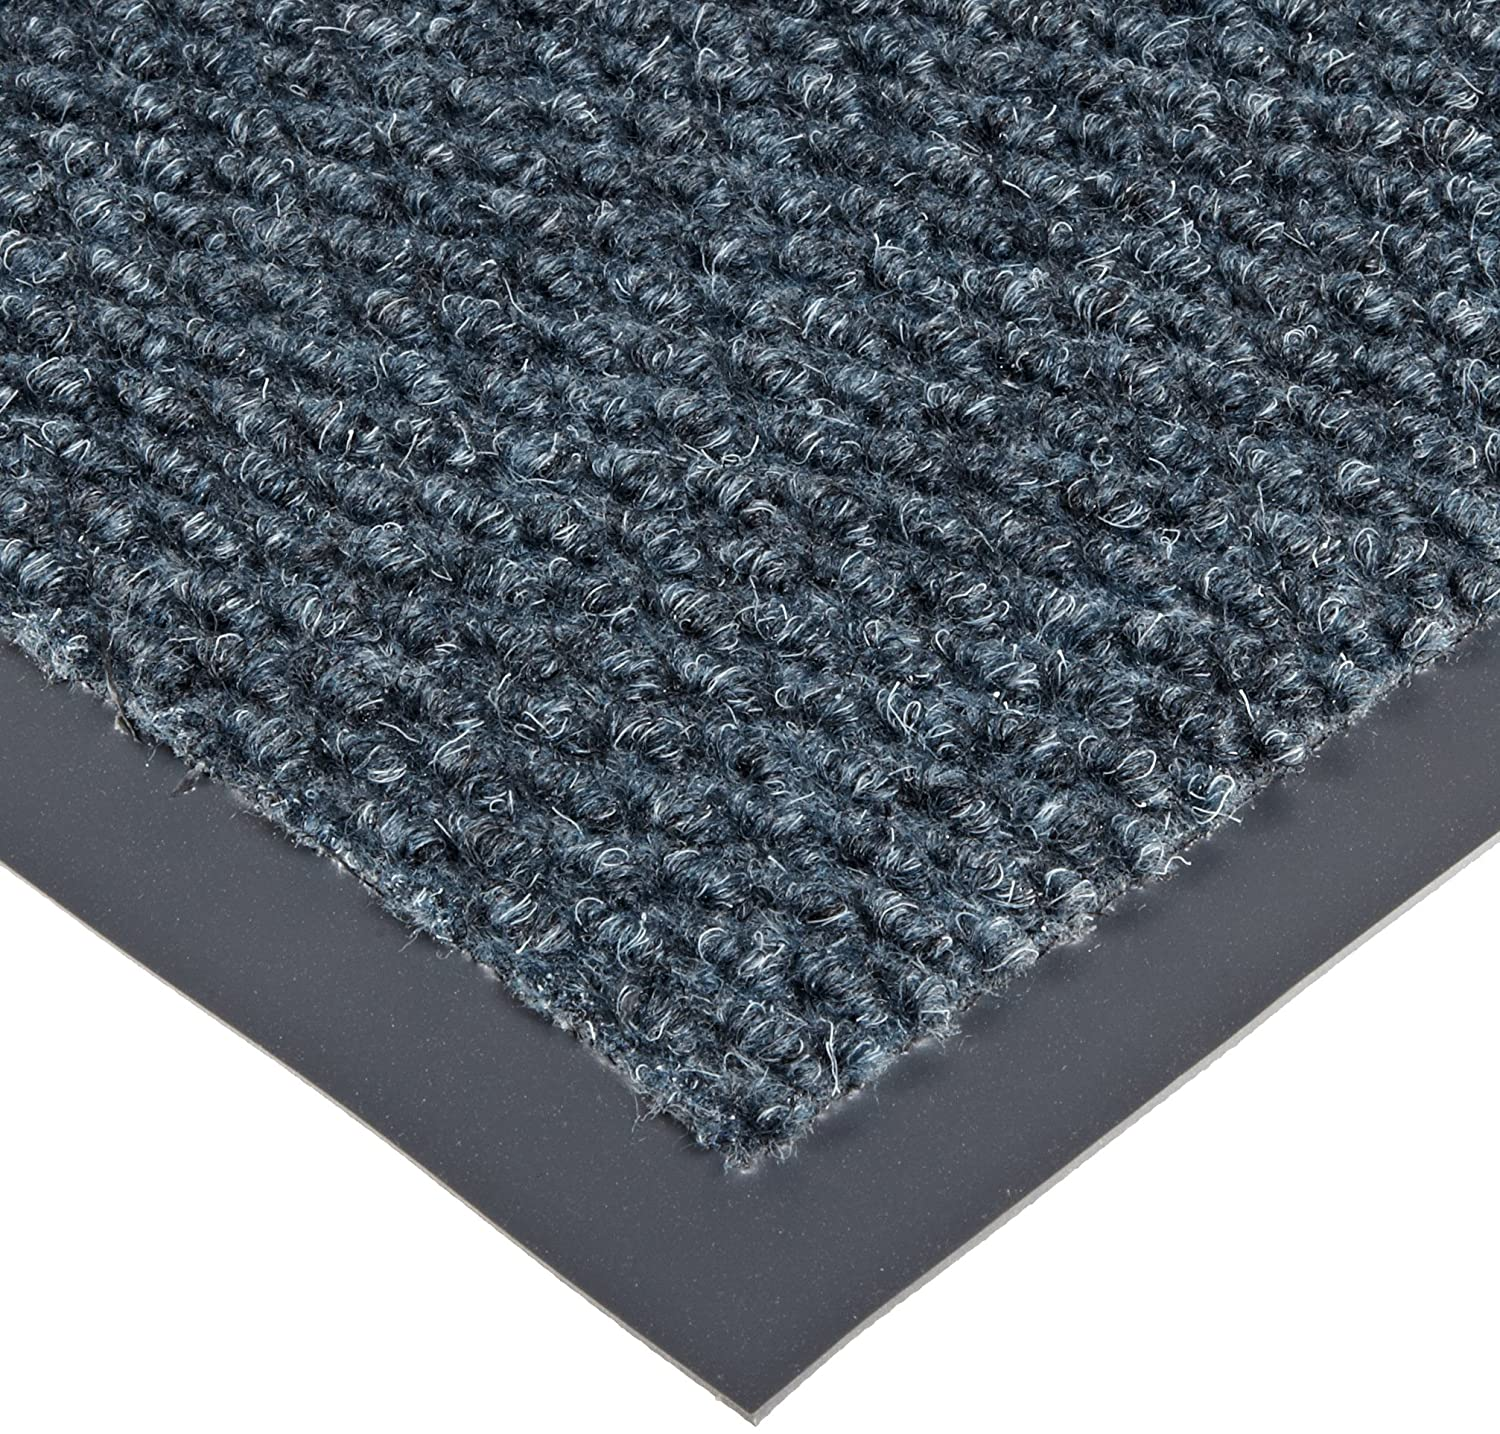 NoTrax AX-AY-ABHI-19843Notrax 136 Polynib Entrance Mat, for Lobbies and Indoor Entranceways, 2' Width x 3' Length x 1/4